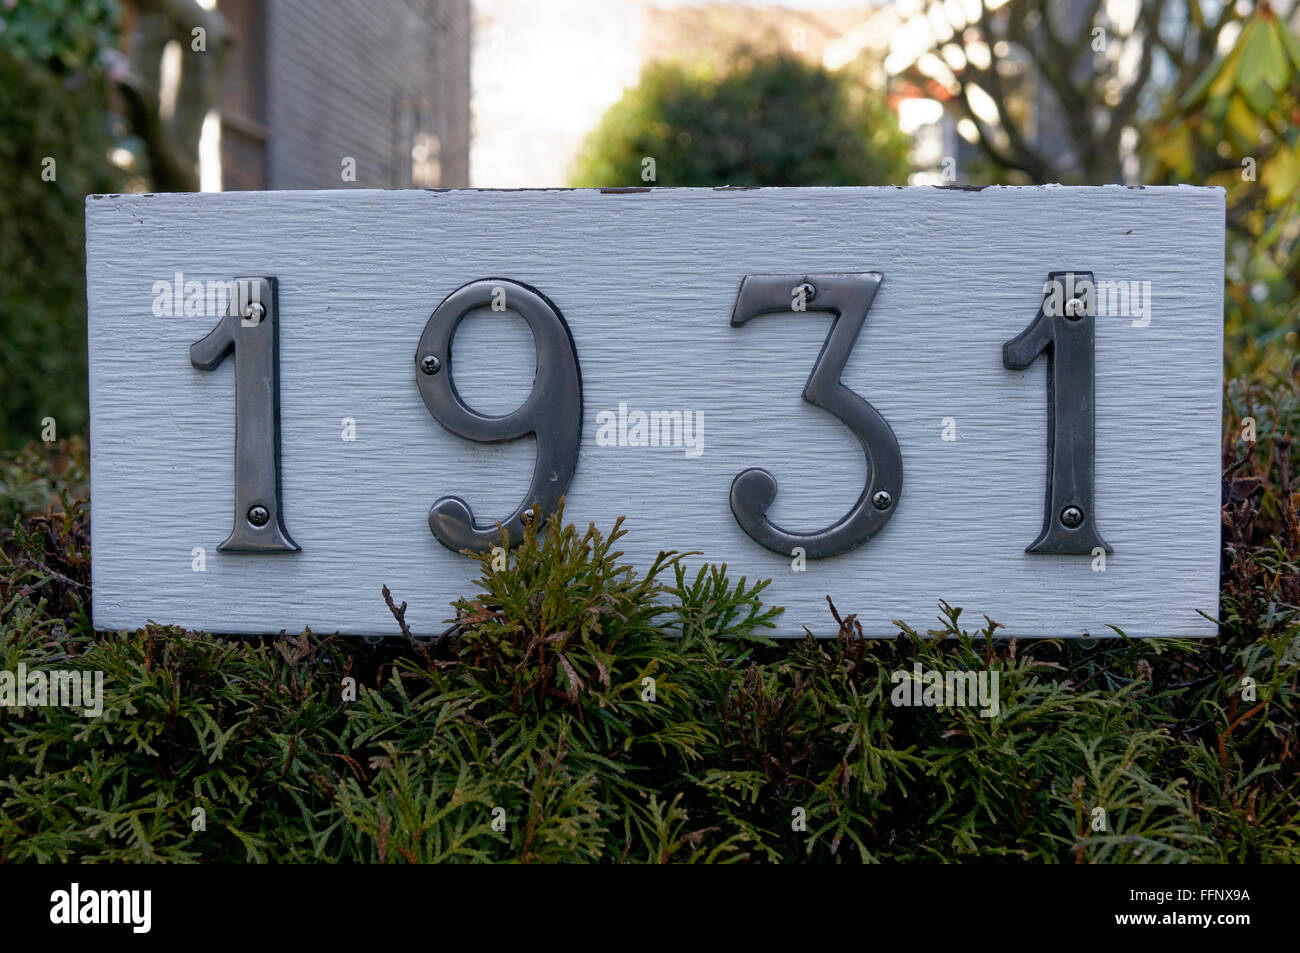 1931 metal house number on a white wooden background - Stock Image